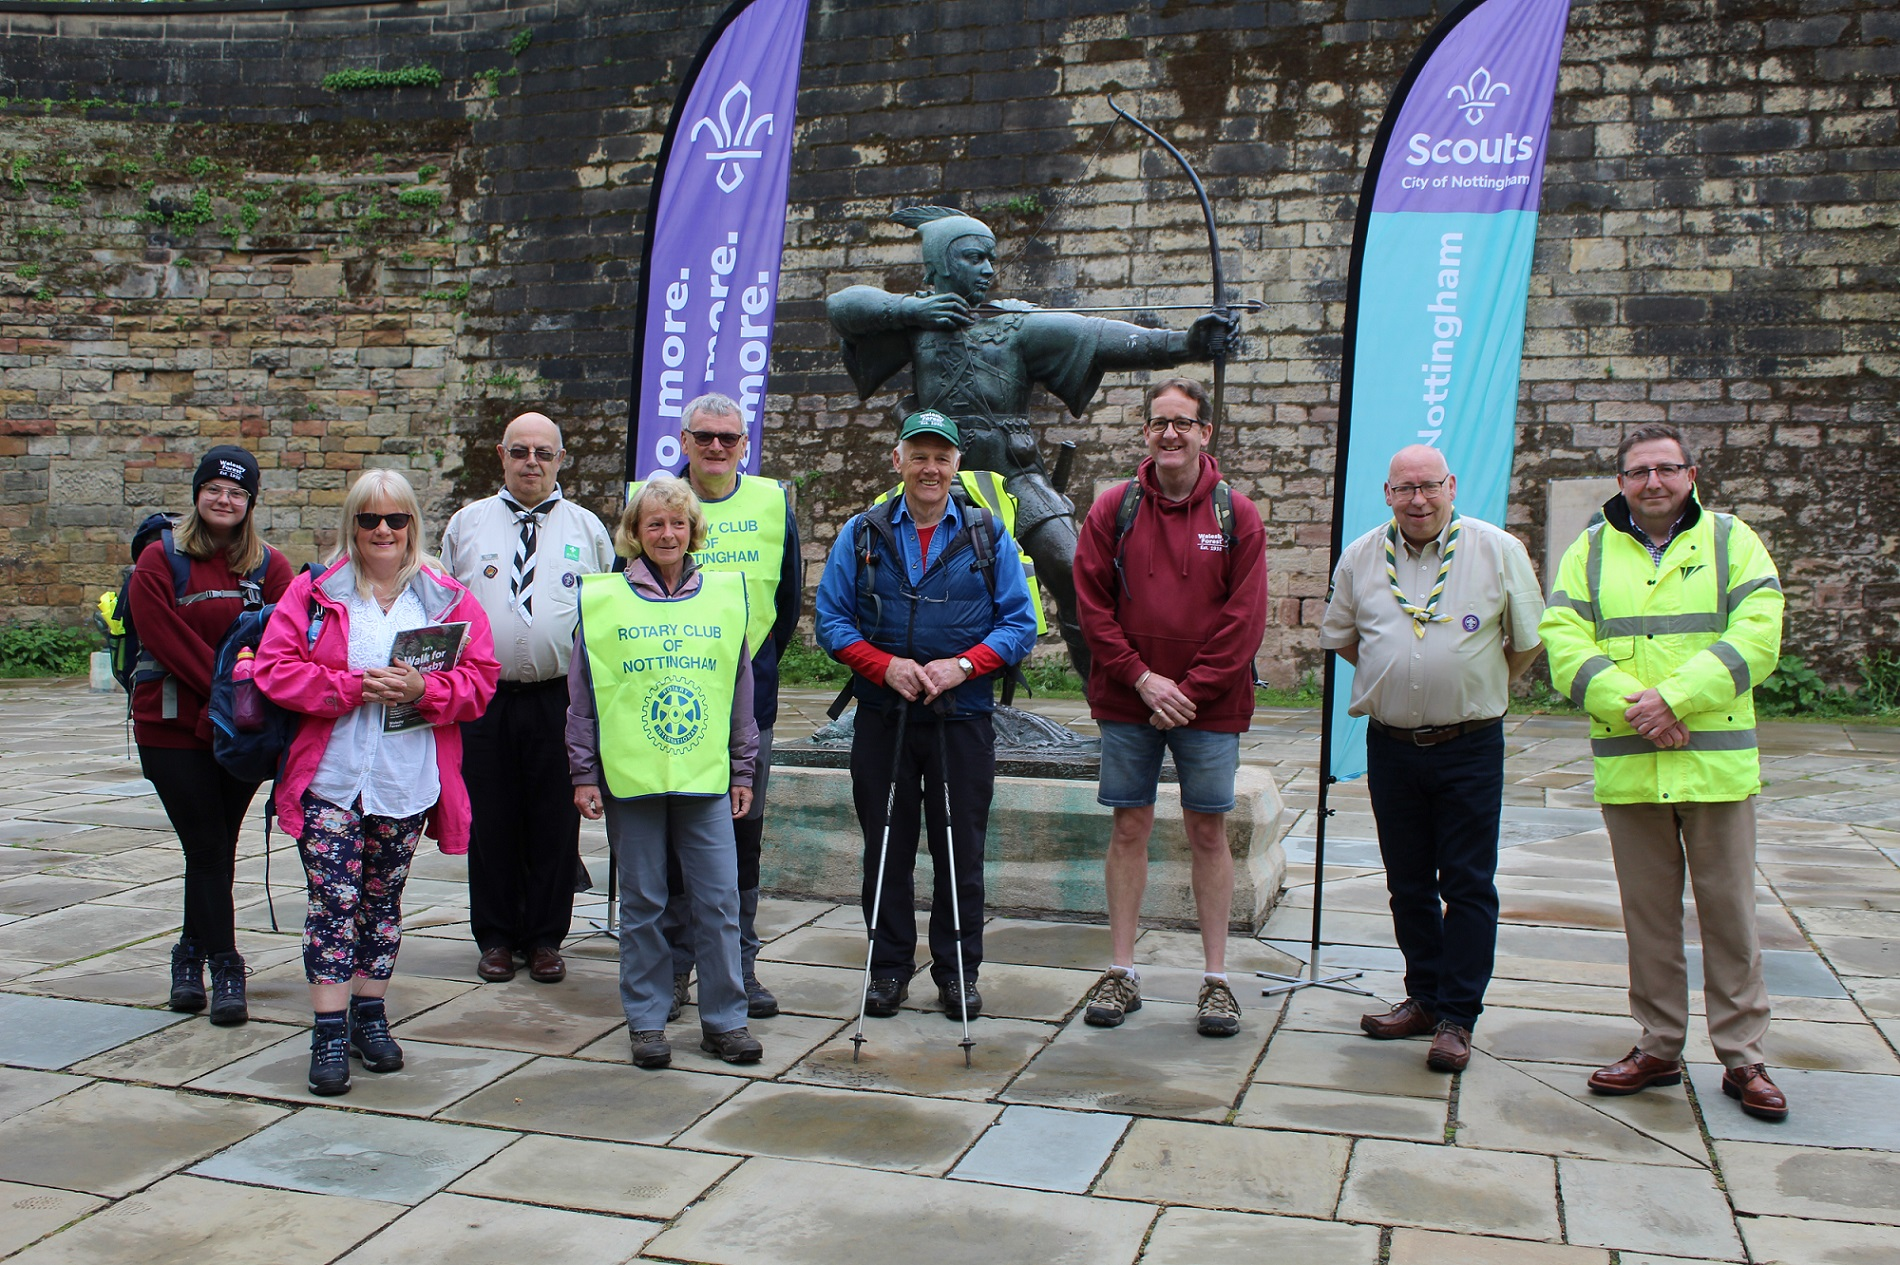 108-MILE 'WALK FOR WALESBY' RAISES AN INCREDIBLE £16,200